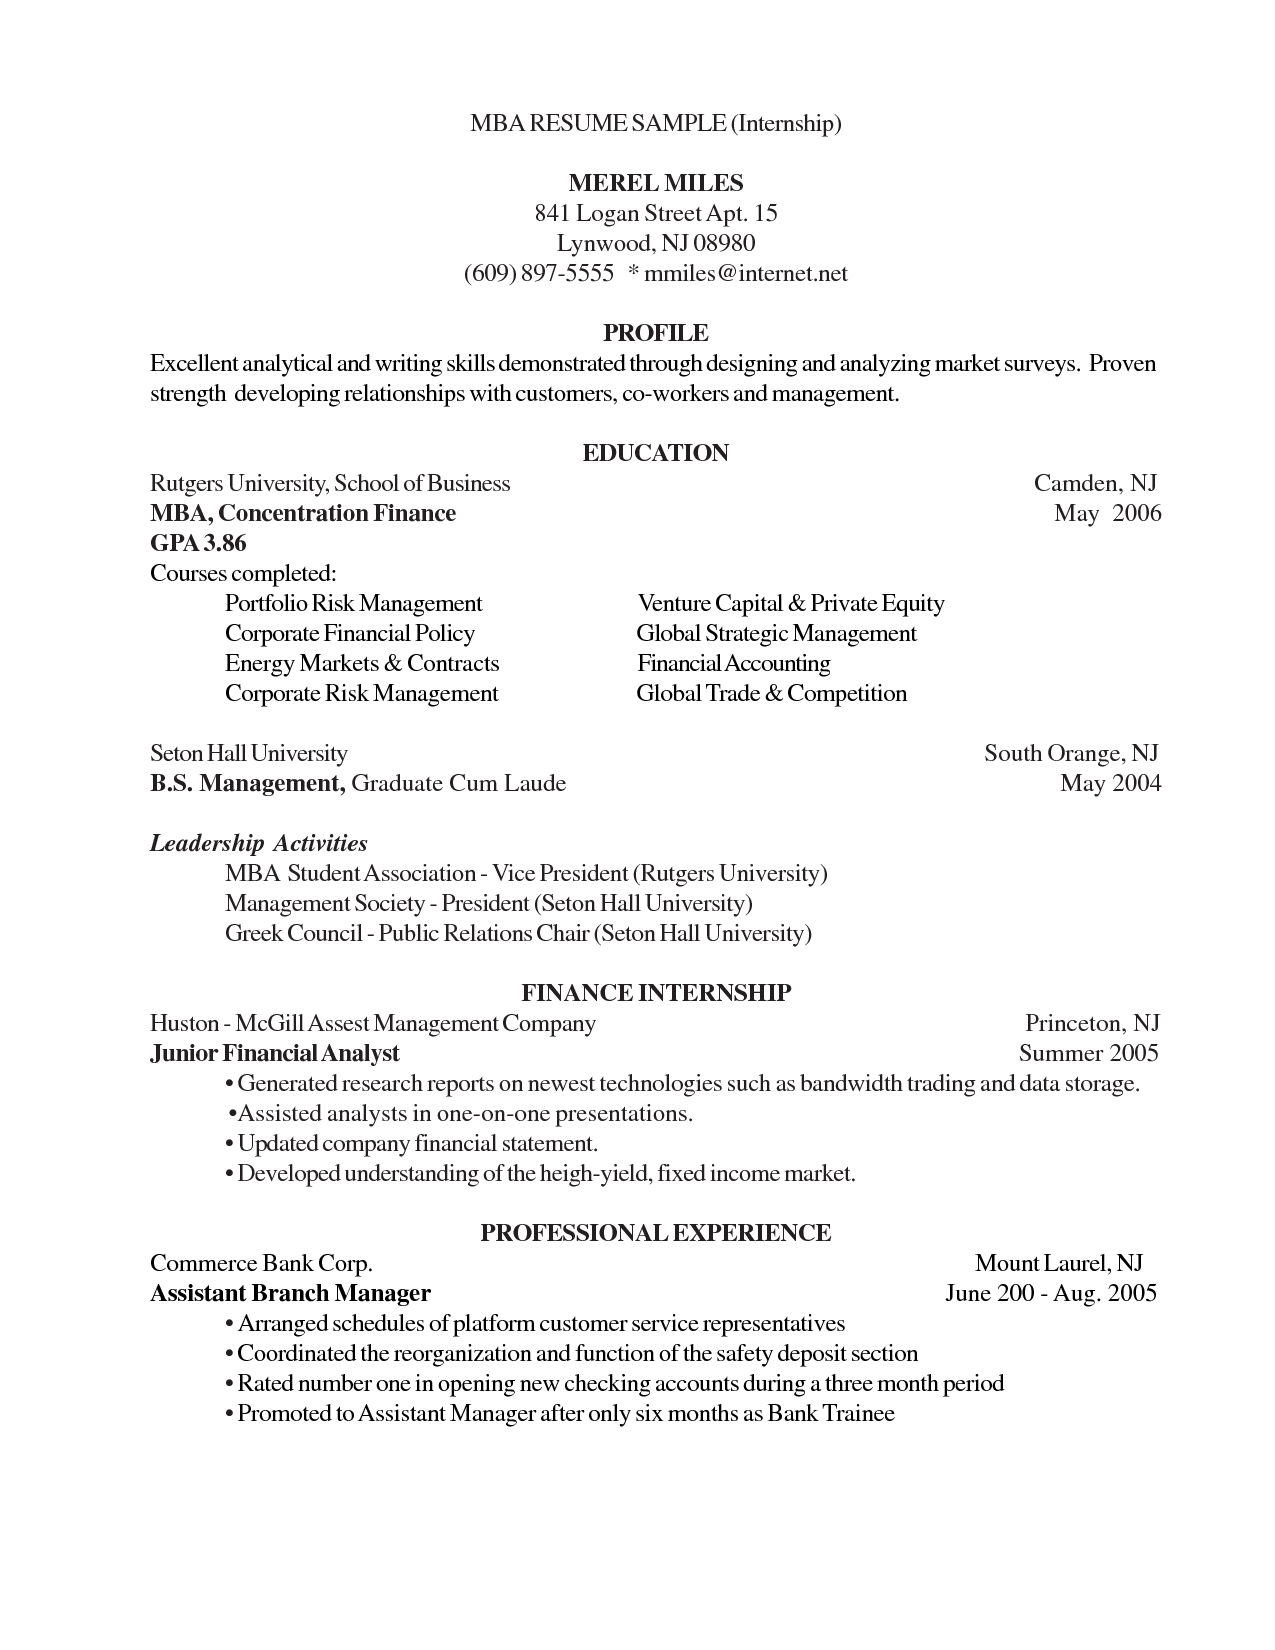 Princeton Resume Template Resume Sample Template Word Examples Resumes Responsibilities